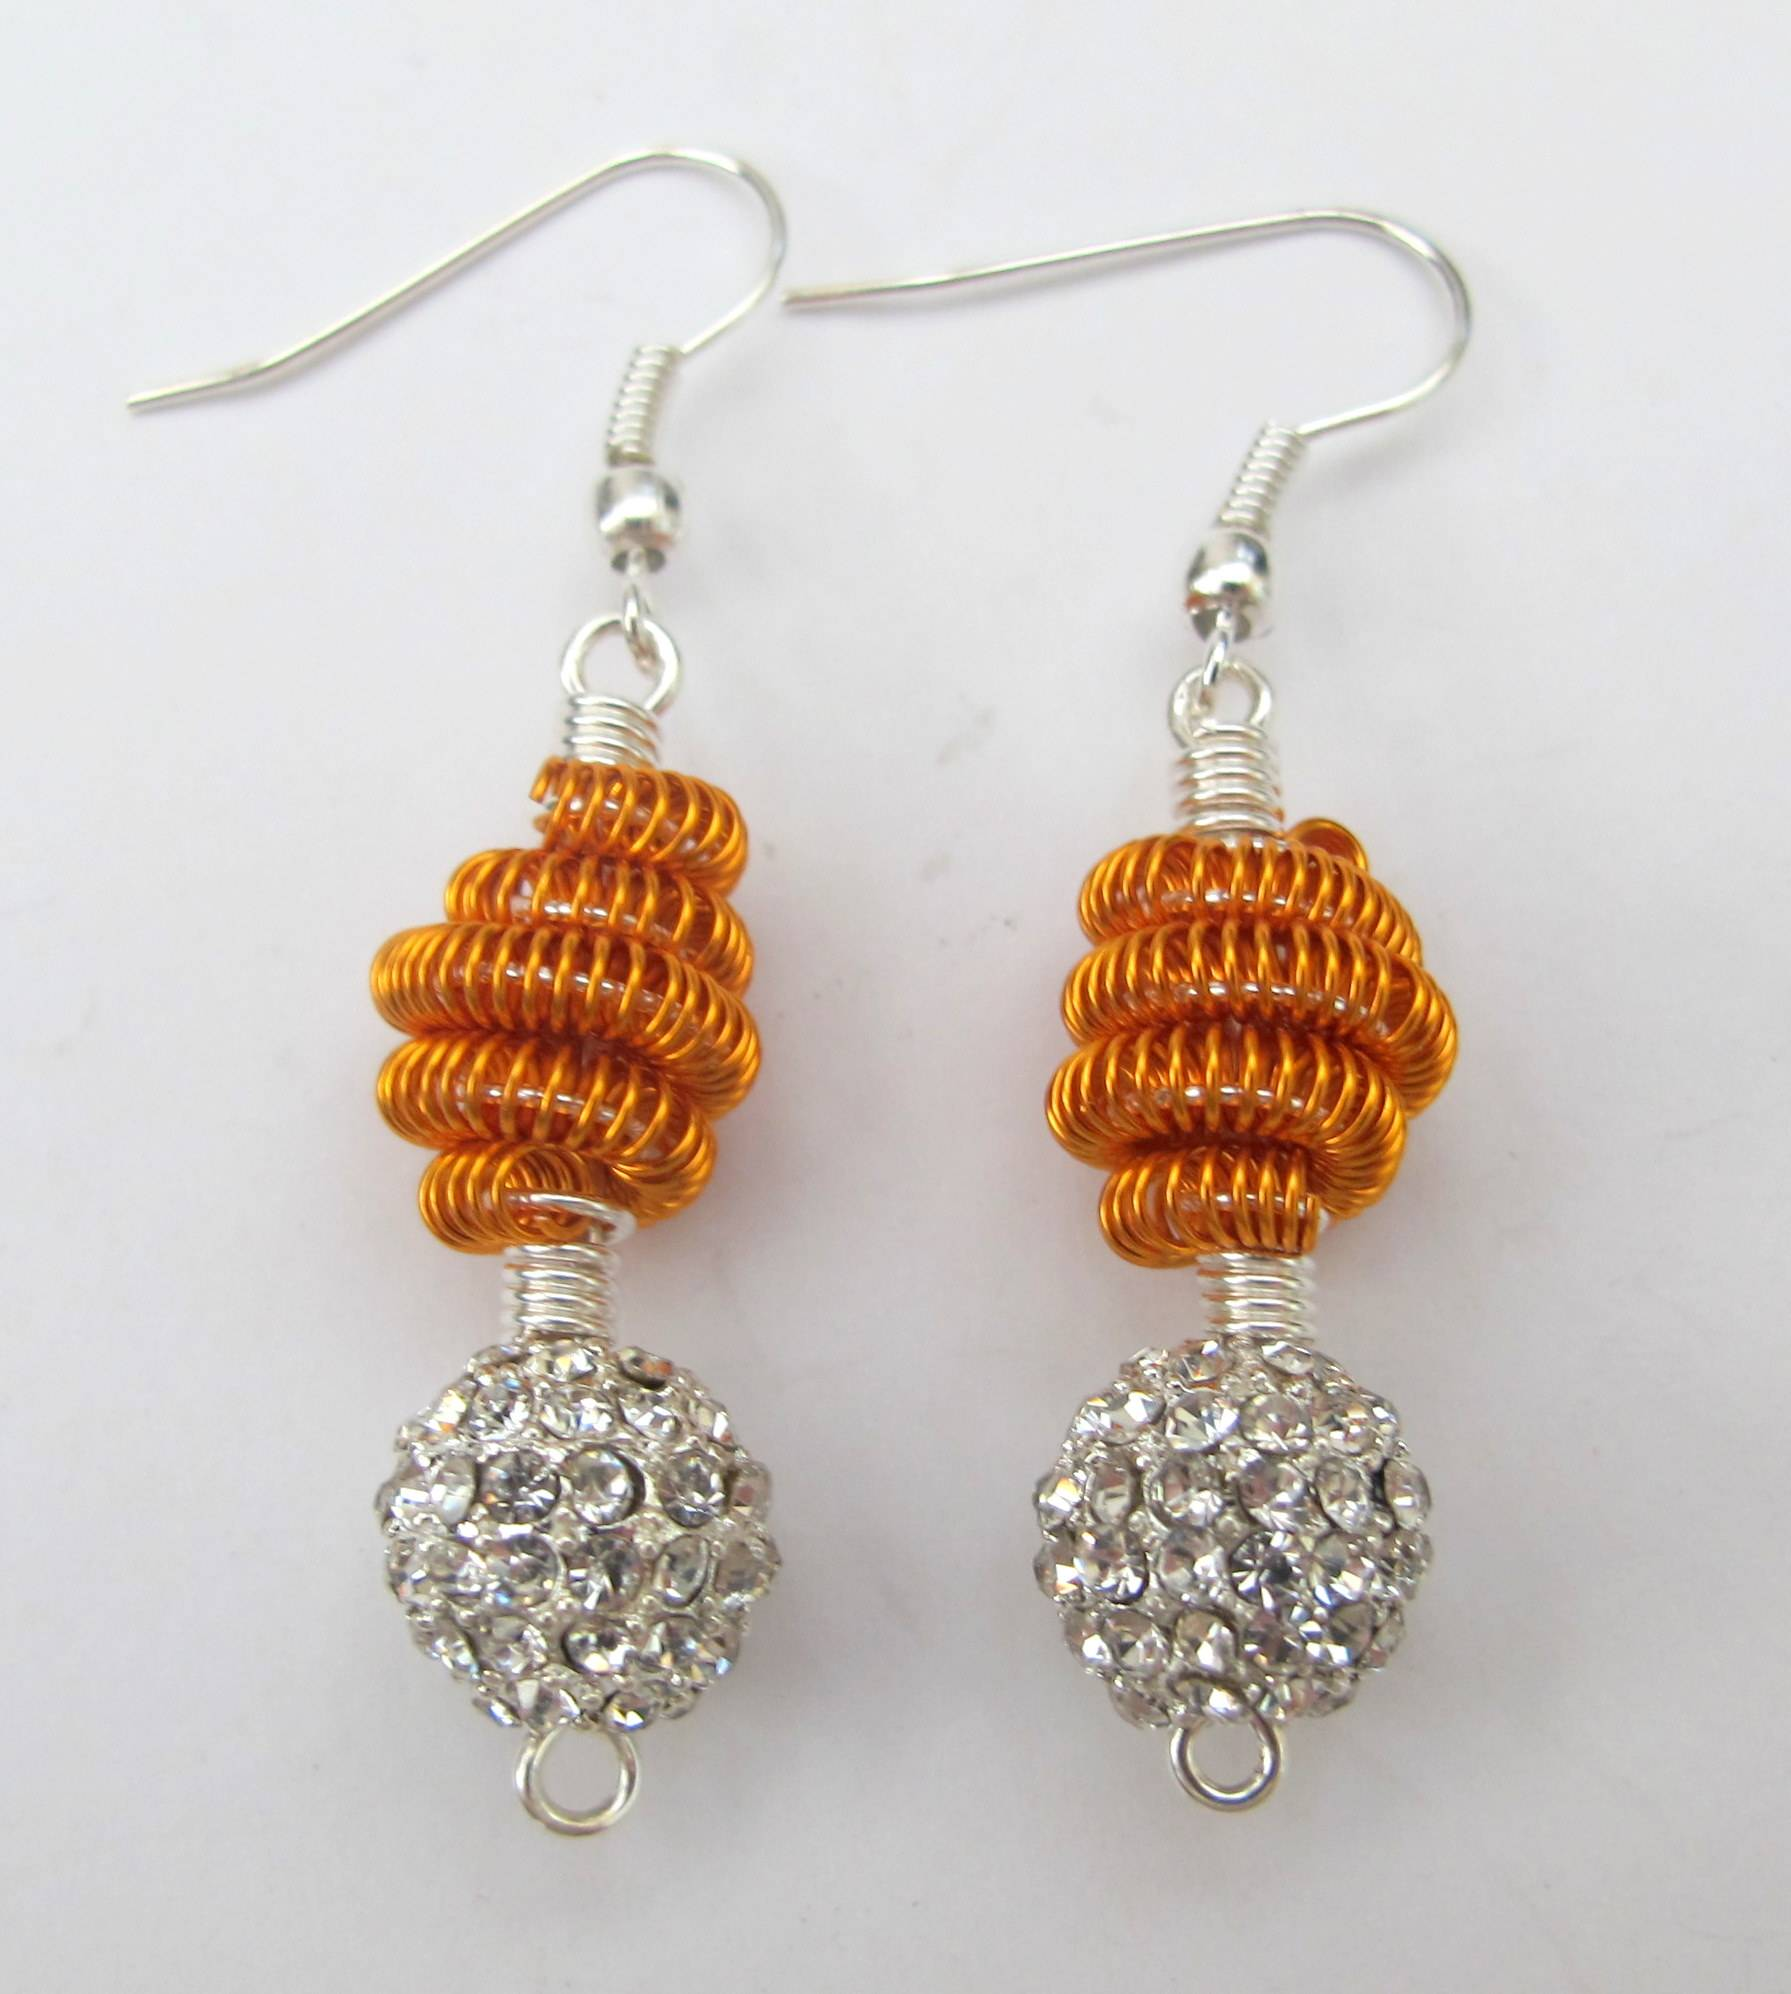 Coiling Gizmo Beads